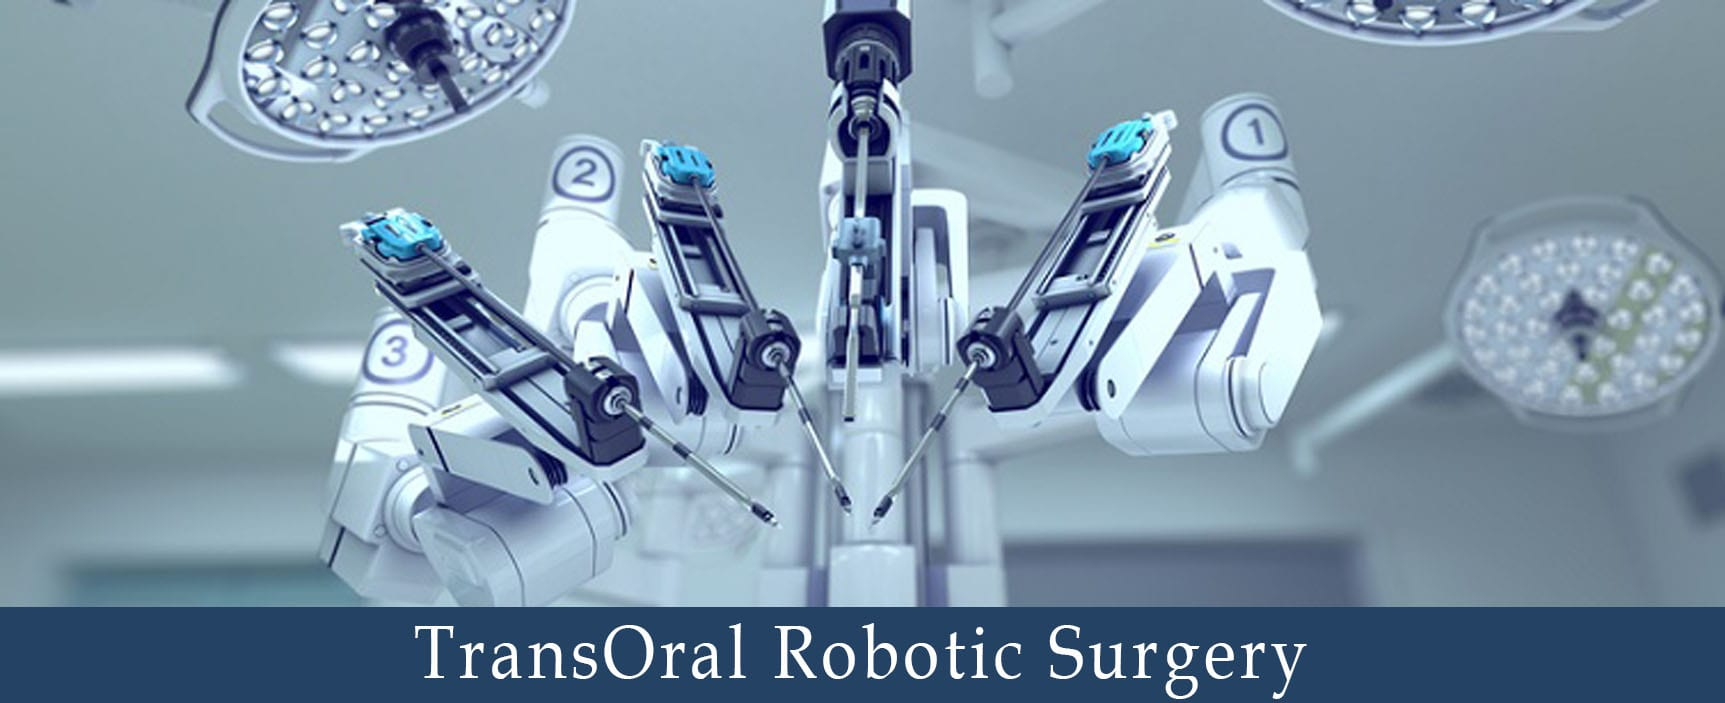 TransOral Robotic Surgery